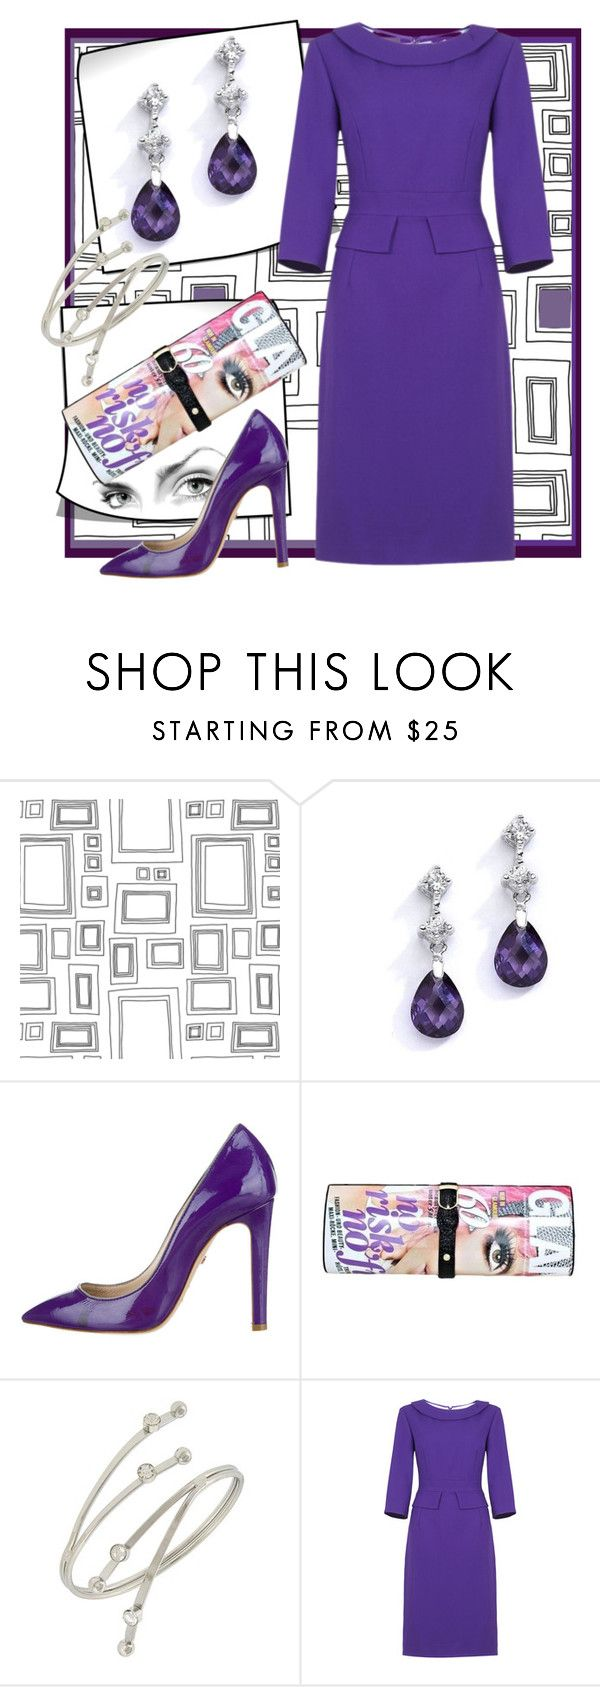 """""""PURPLE!"""" by shoppe23 ❤ liked on Polyvore featuring Graham & Brown, Ruthie Davis, purpledress and Shoppe23"""